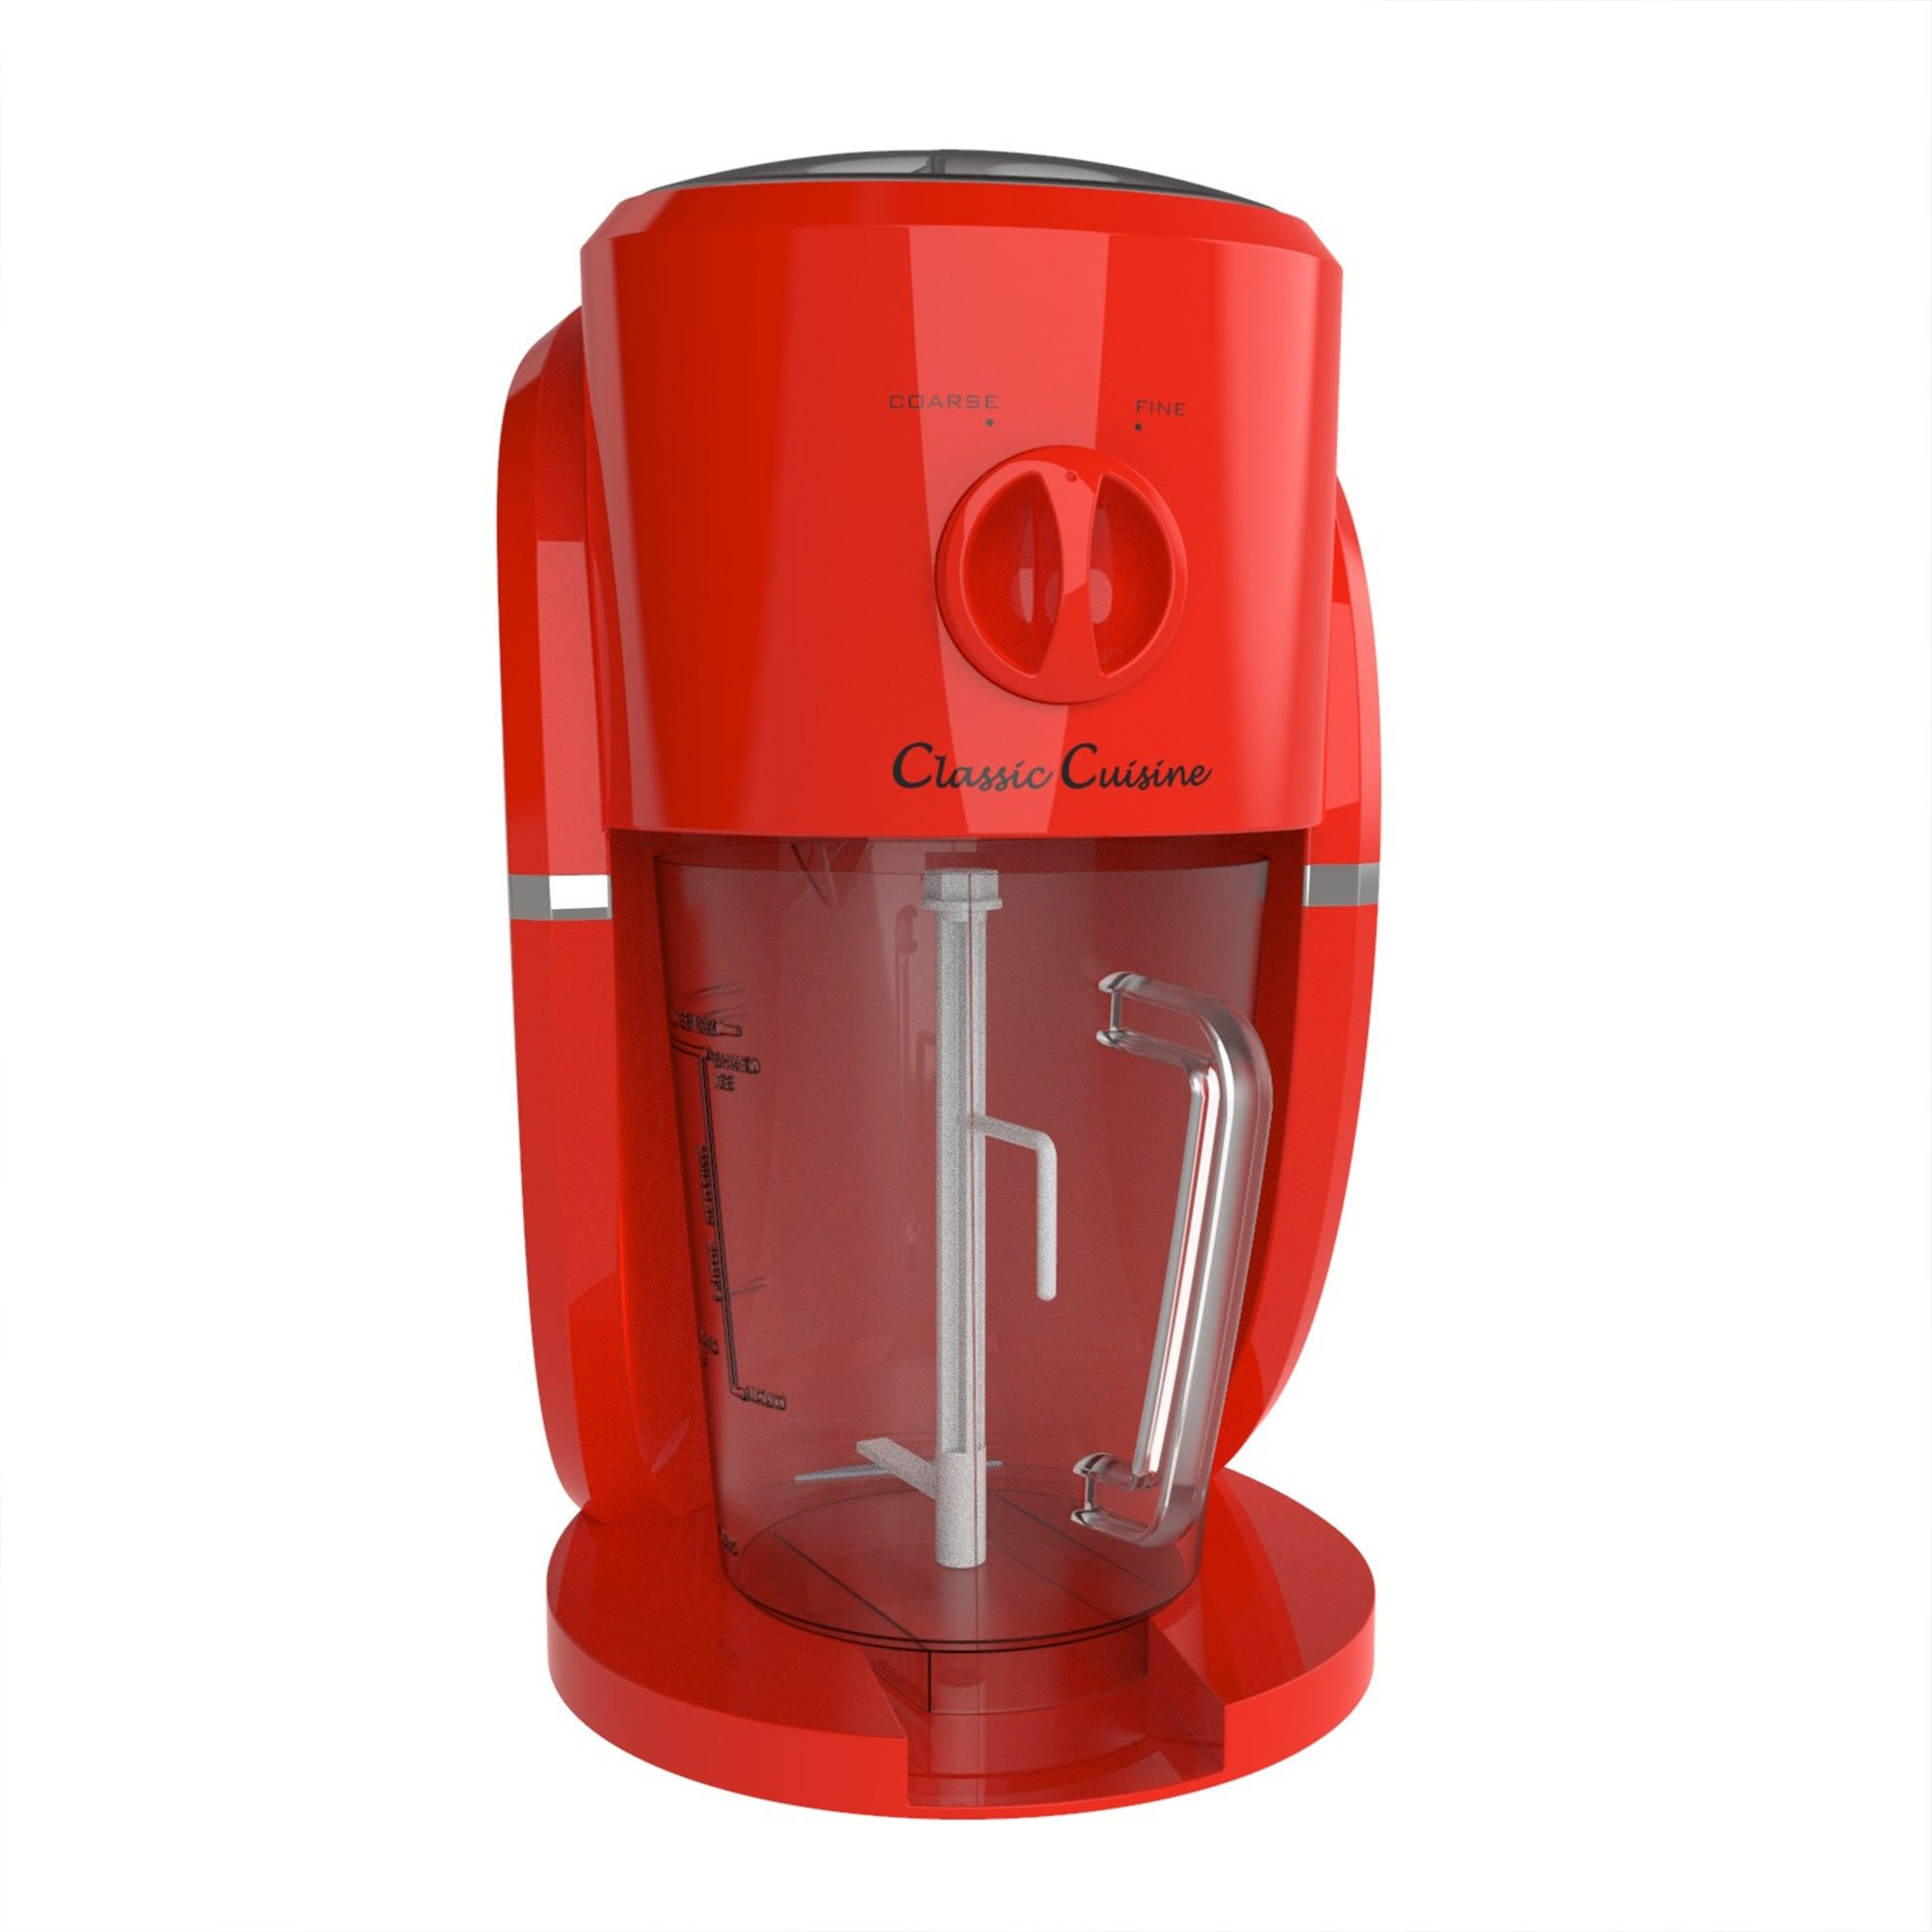 Frozen Drink Maker, Mixer and Ice Crusher Machine for Margaritas, Pina Coladas, Daiquiris, Shaved Ice Treats or Slushy Desserts by Classic Cuisine by Classic Cuisine (Image #5)